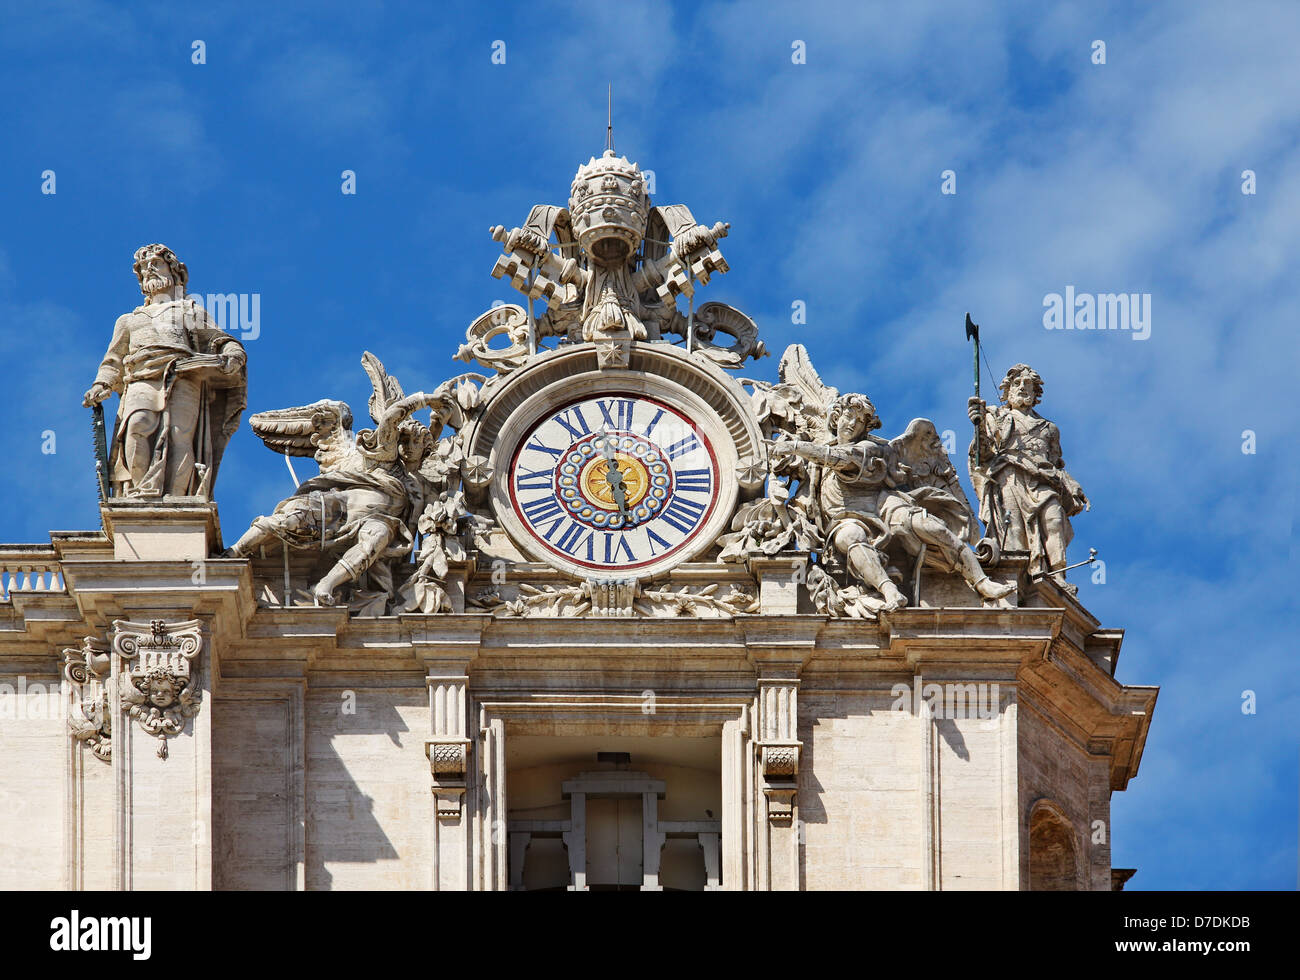 Clock with sculptures on facade of Saint Peter basilica. Vatican, Italy Stock Photo